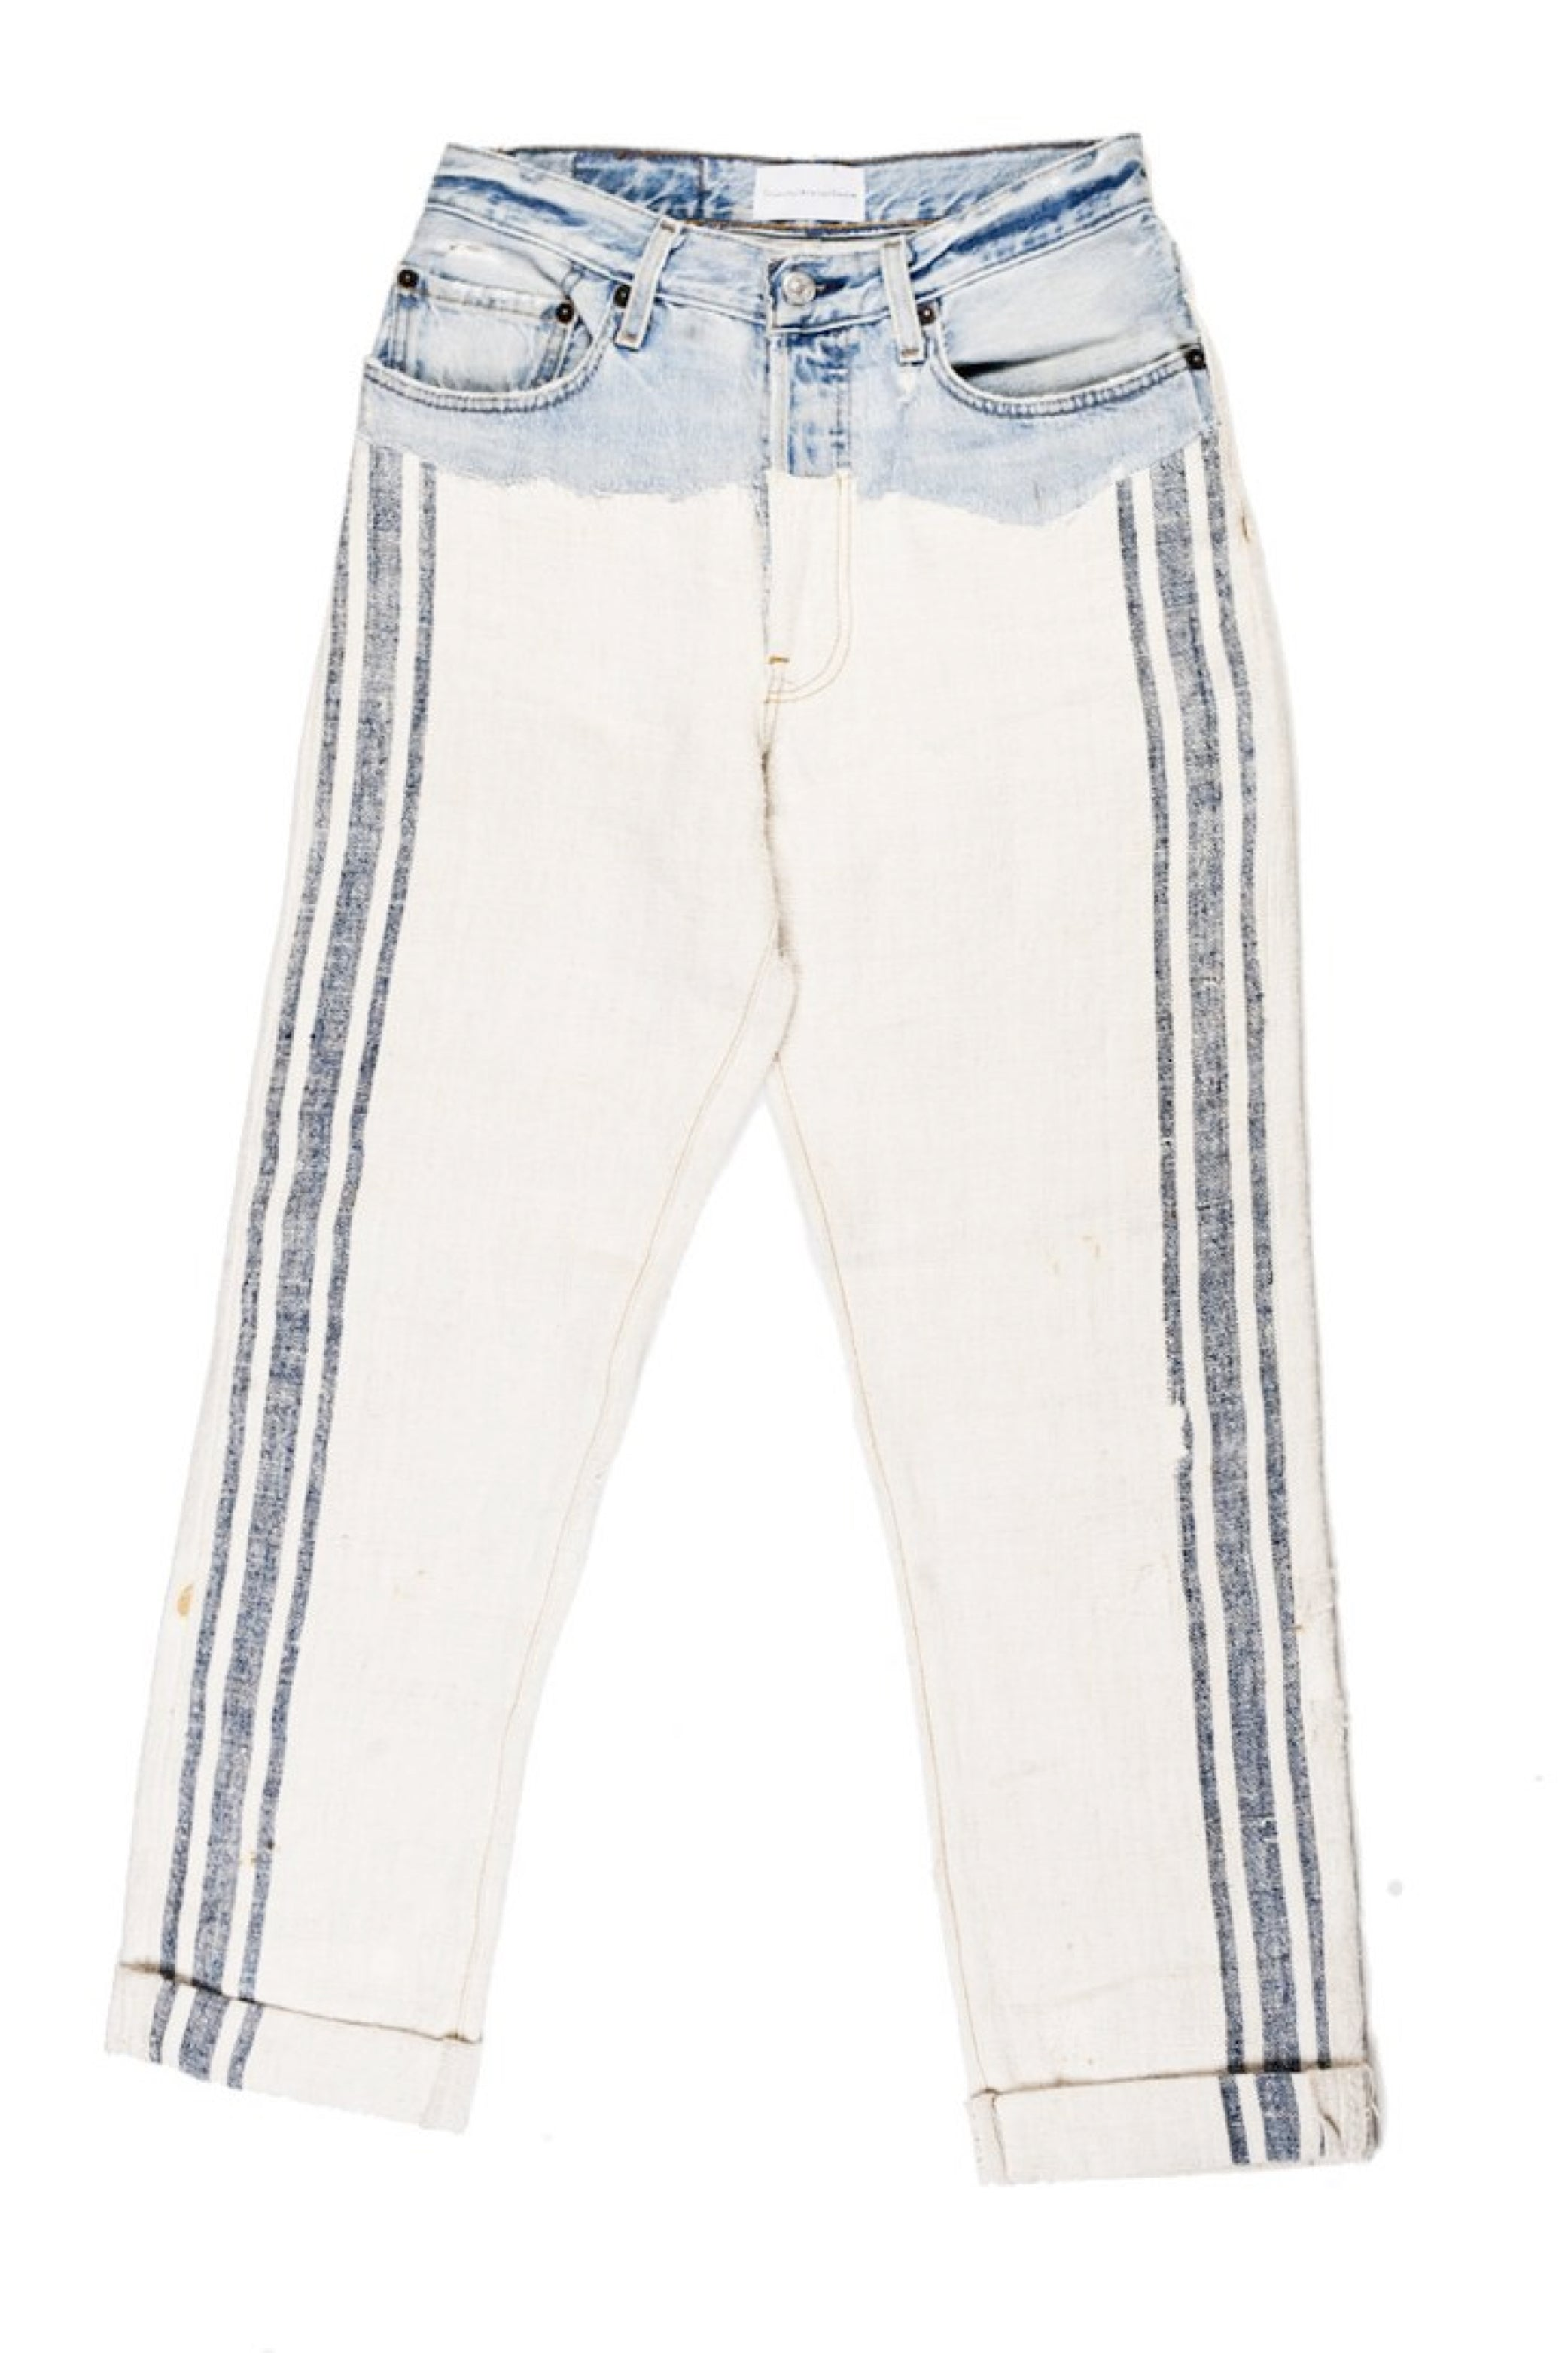 Repurposed Vintage Denim x Linen Jeans